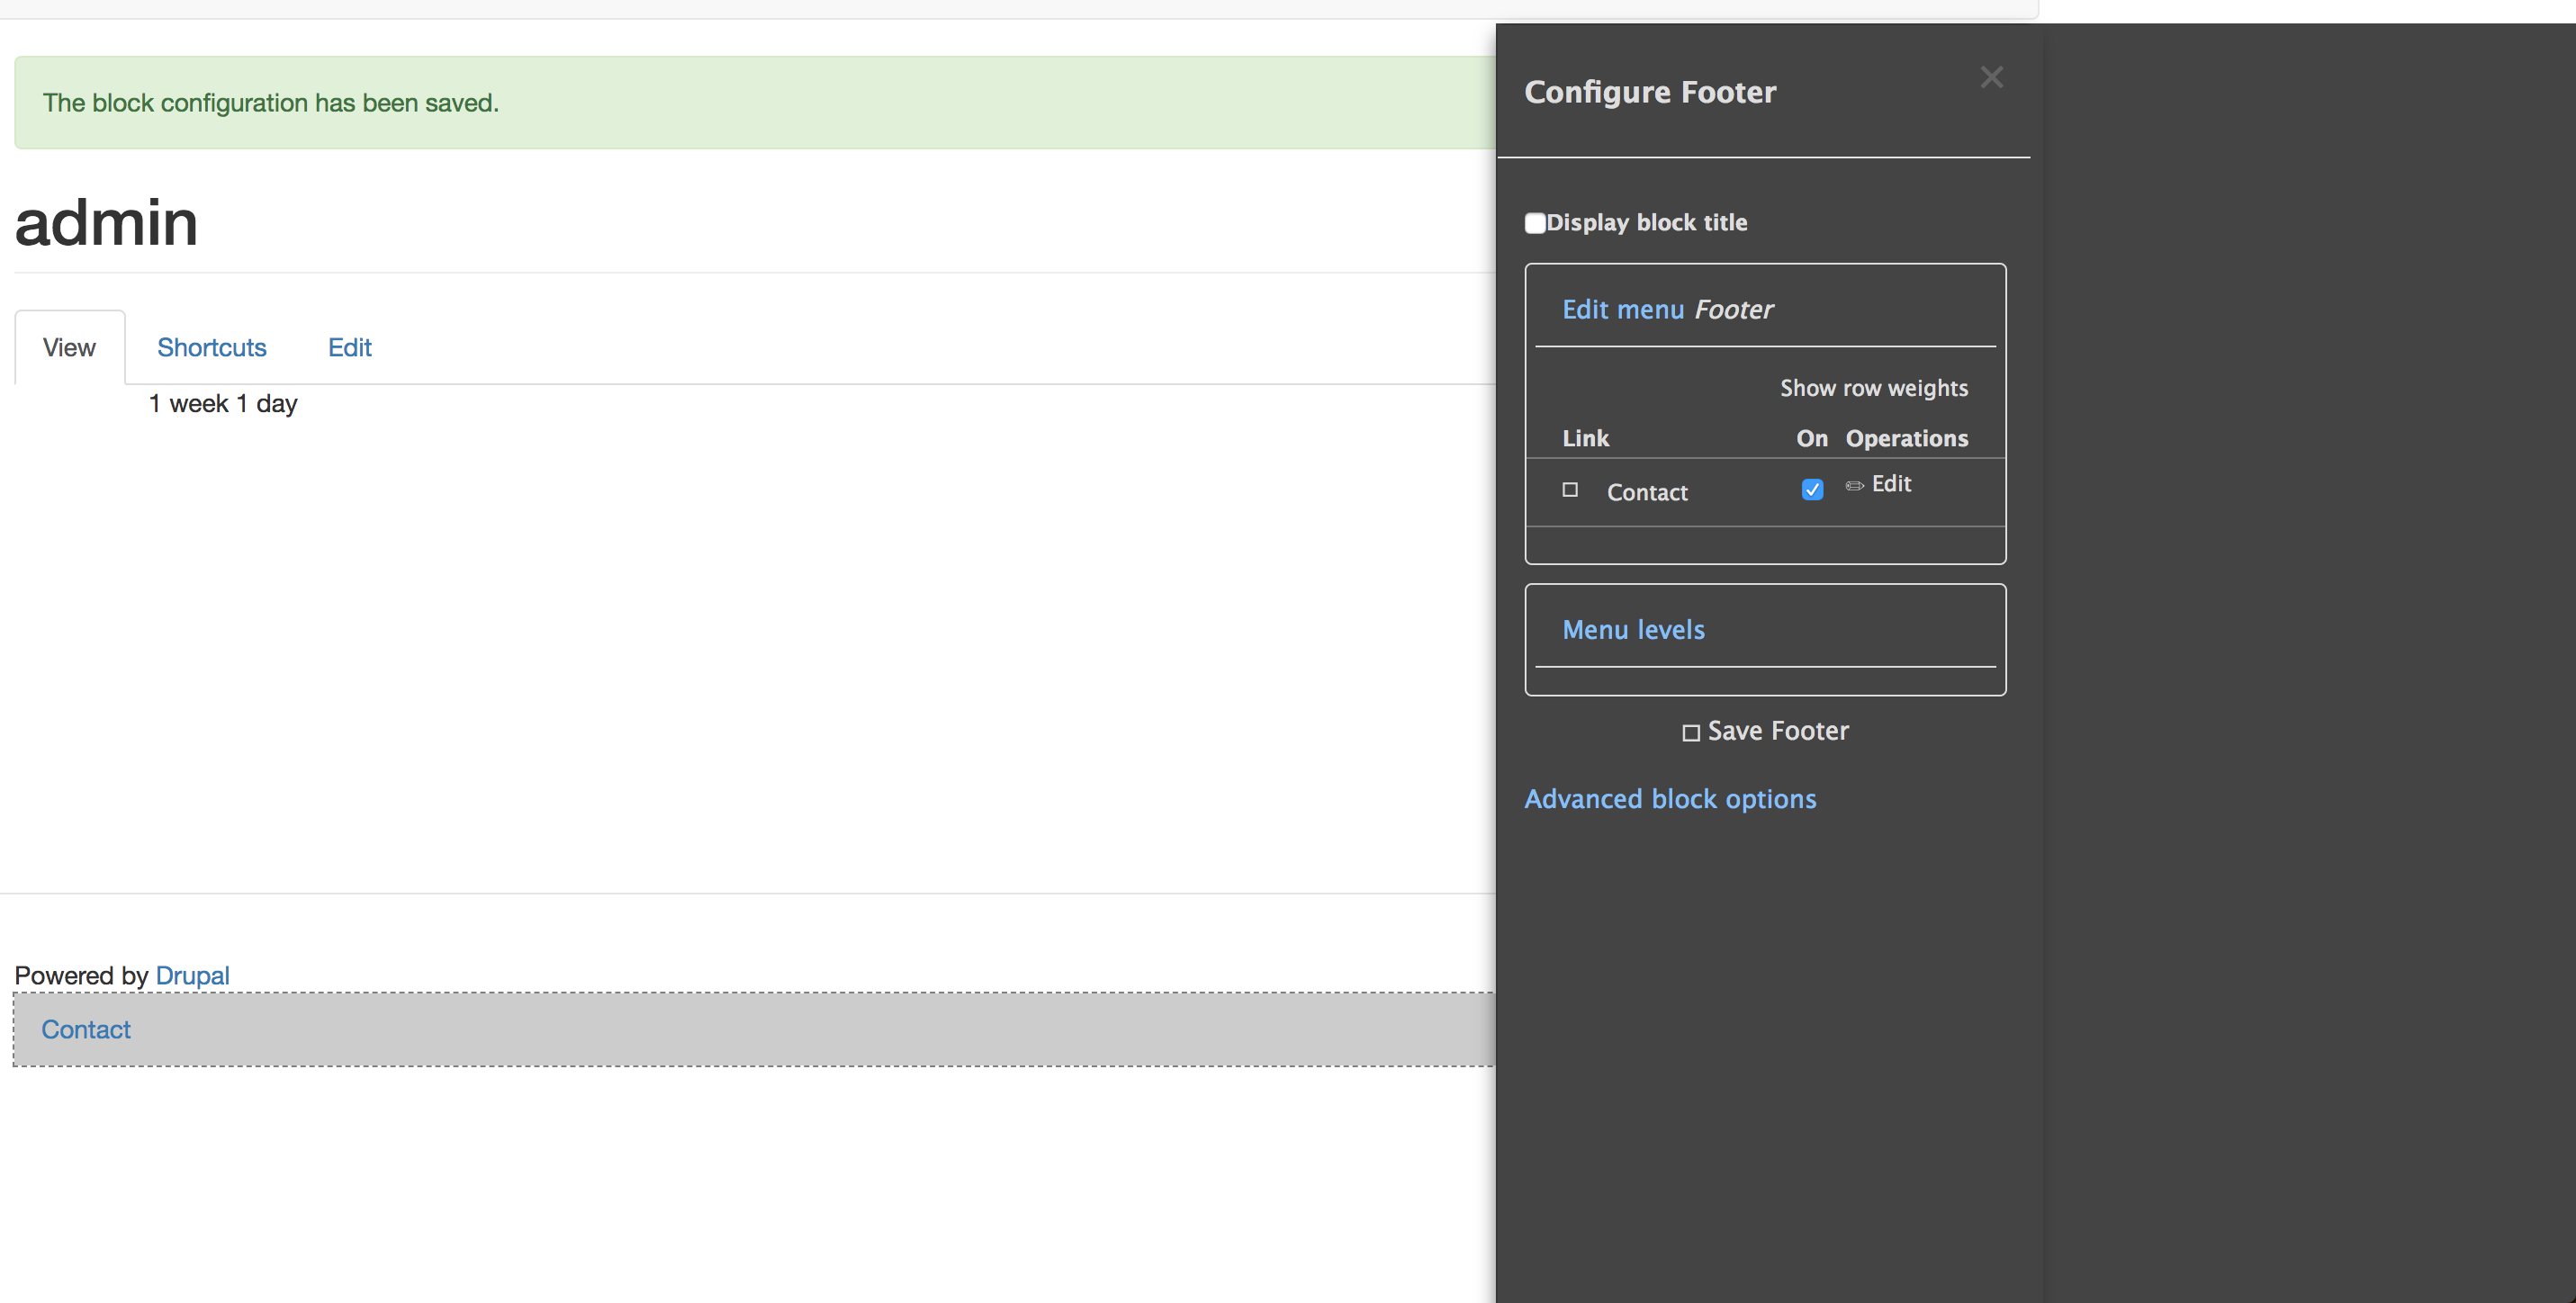 bootstrap] Add support for the Off-canvas dialog used by